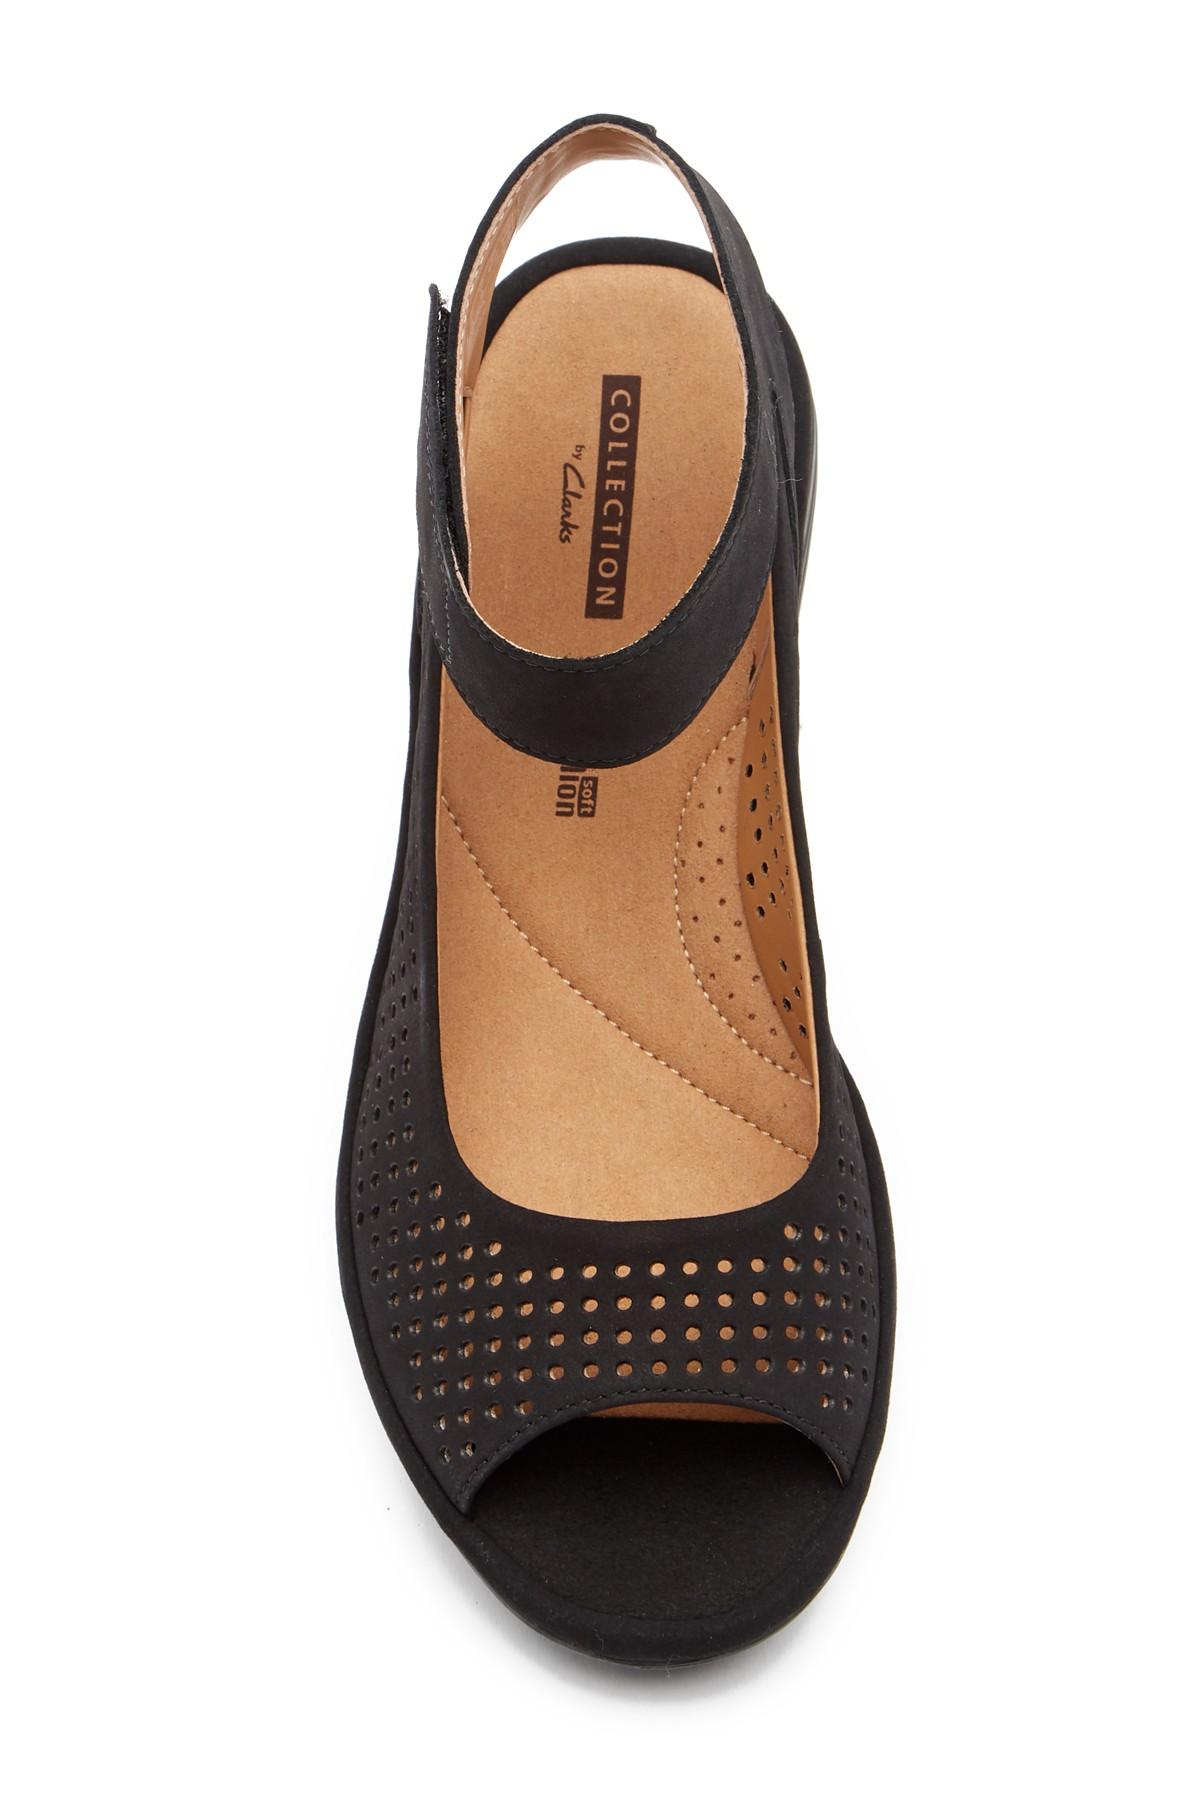 b9ed93a639a1 Clarks - Black Reedly Salene Wedge Sandal - Wide Width Available - Lyst.  View fullscreen